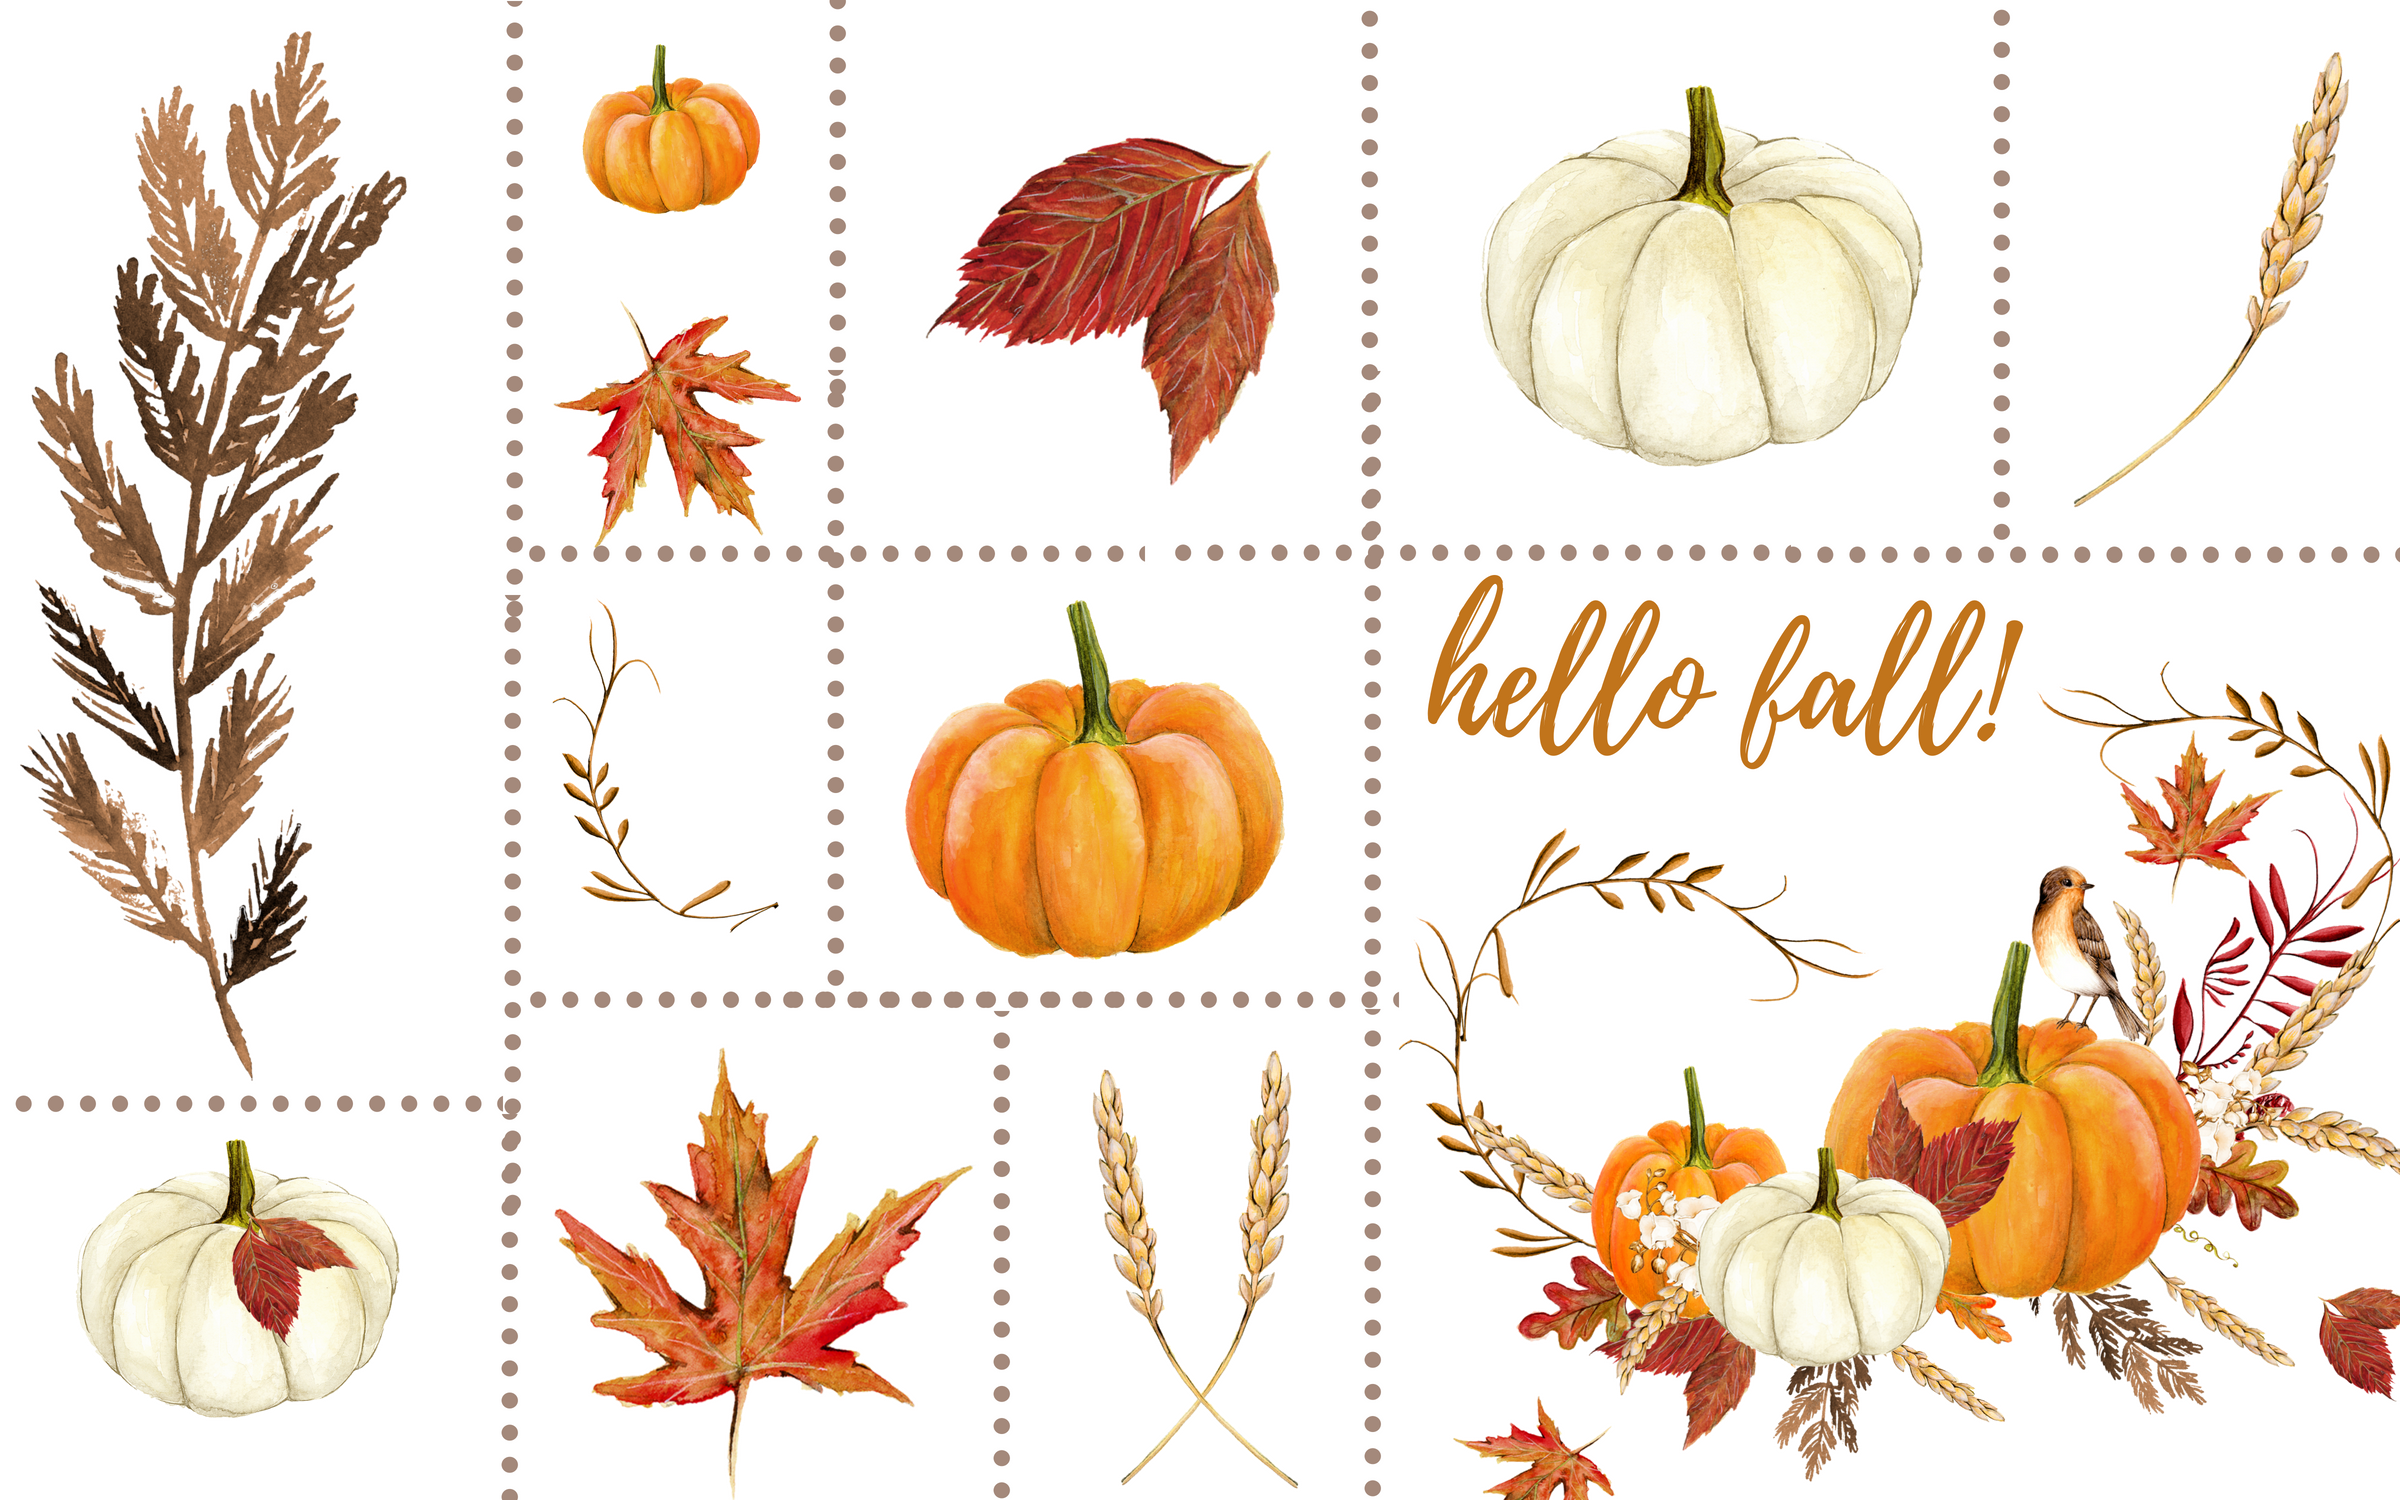 2400x1500 - Fall Wallpapers for Computers 53